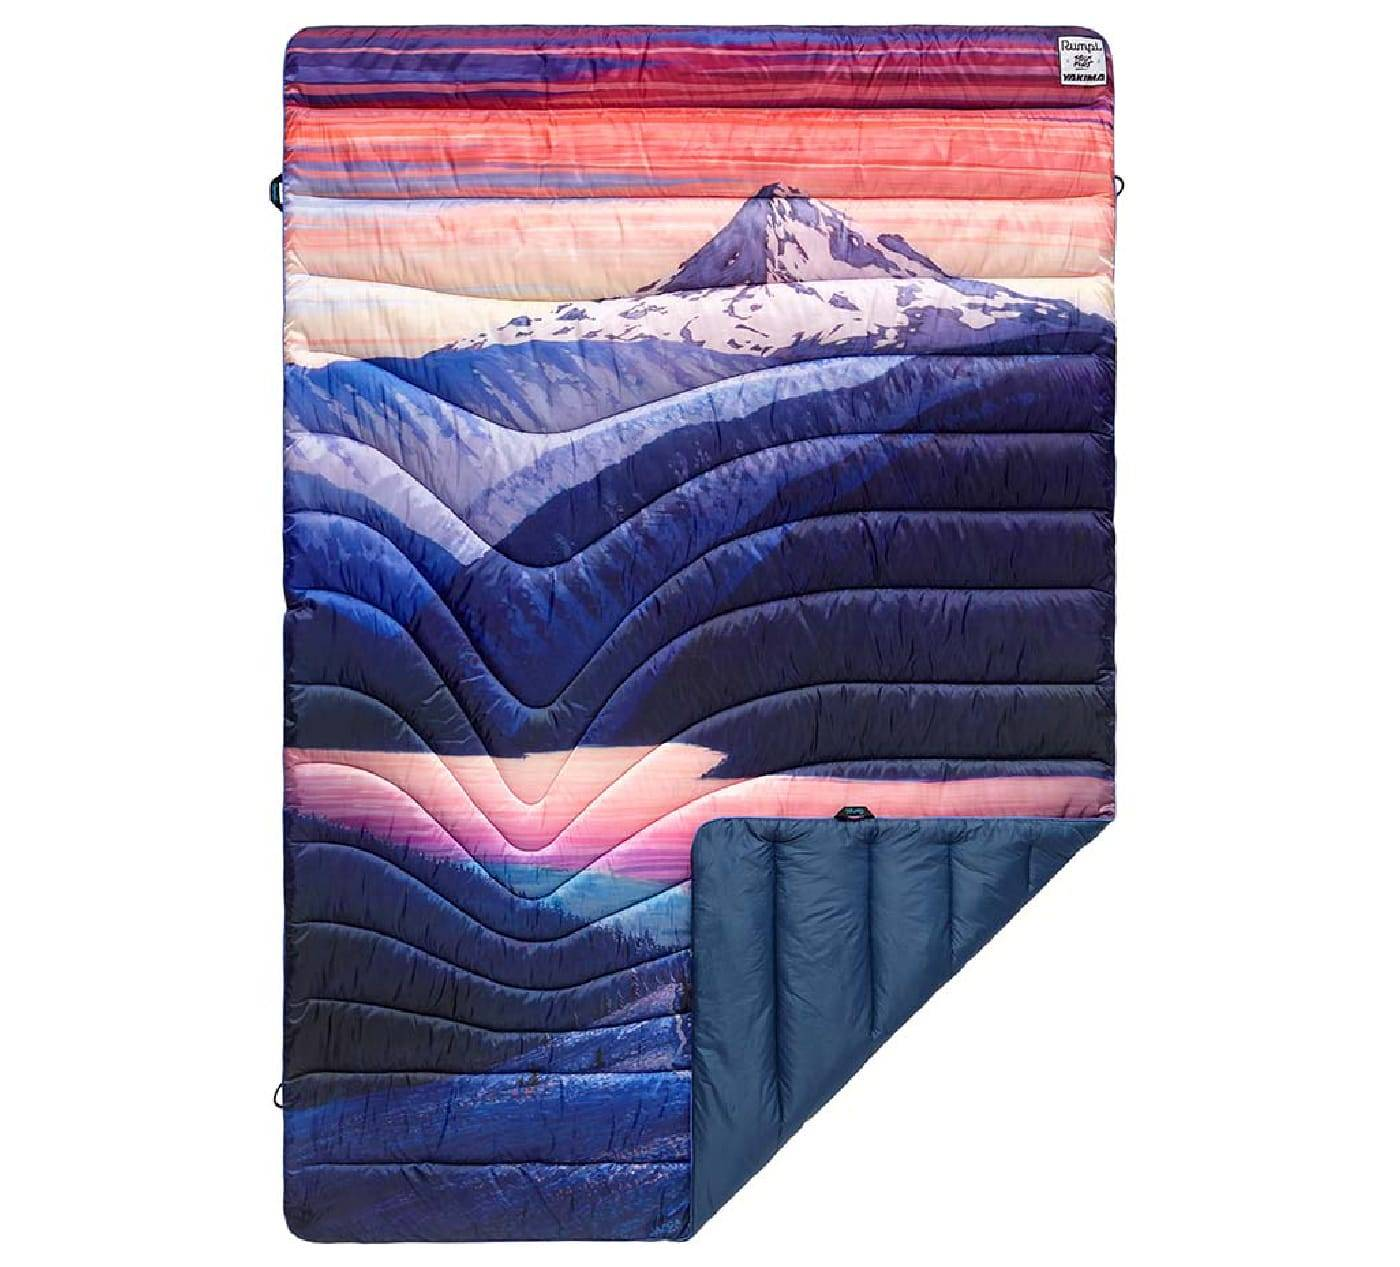 Picture of Rumpl's Yakima collaboration blanket showing Mt. Hood and Trillium Lake